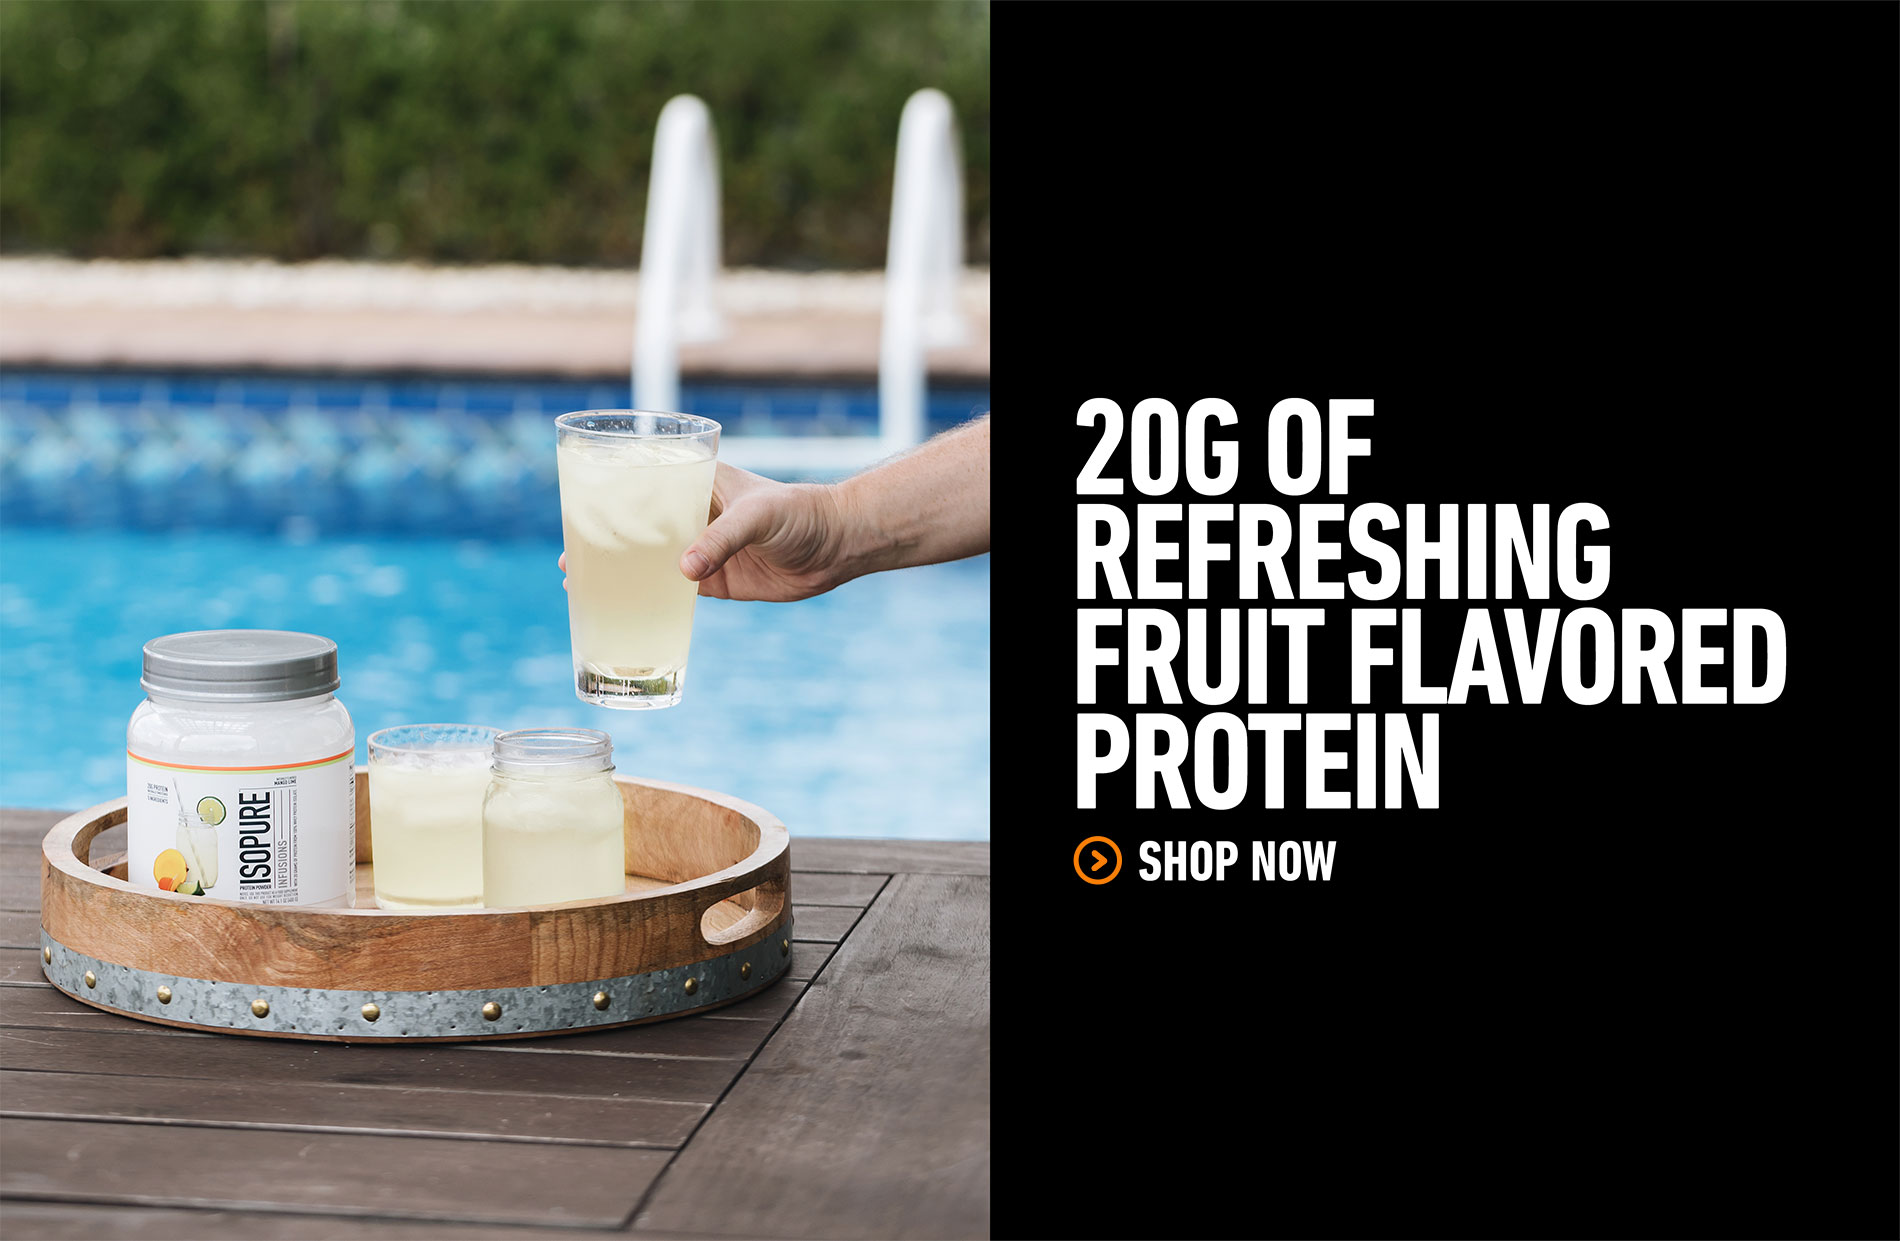 20G OF REFRESHING FRUIT FLAVORED PROTEIN